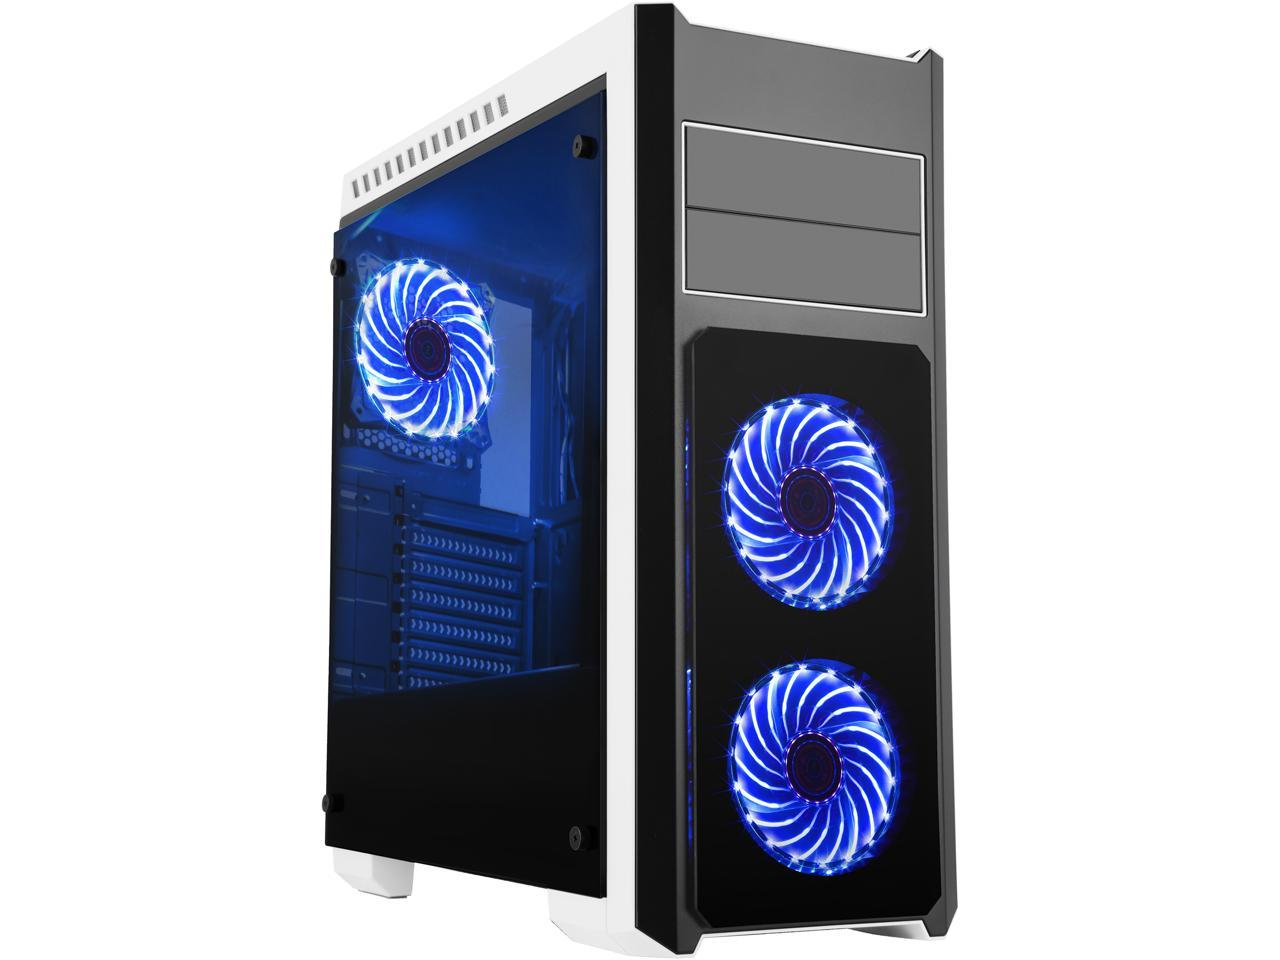 DIYPC DIY-TG8-BW ATX Full Tower Gaming Computer Case Chassis and Pre-Installed 3 x Blue Light Fan